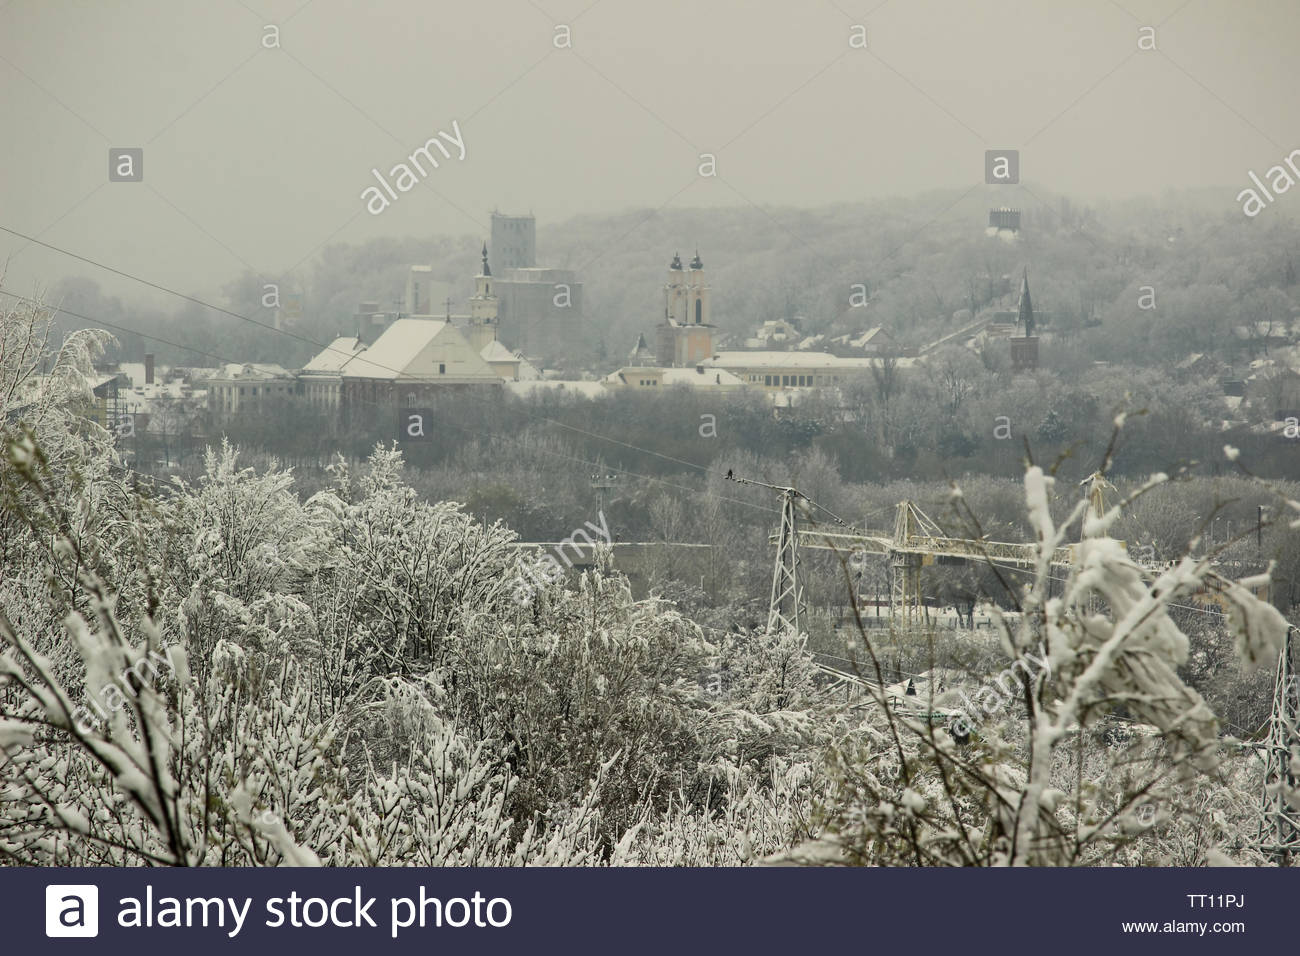 Moody Winter Landscape With the Snowy Frost Trees on a Hill, an Old Town's Buildings in a Hollow in Front of a Foggy Hill in a Horizon - Stock Image